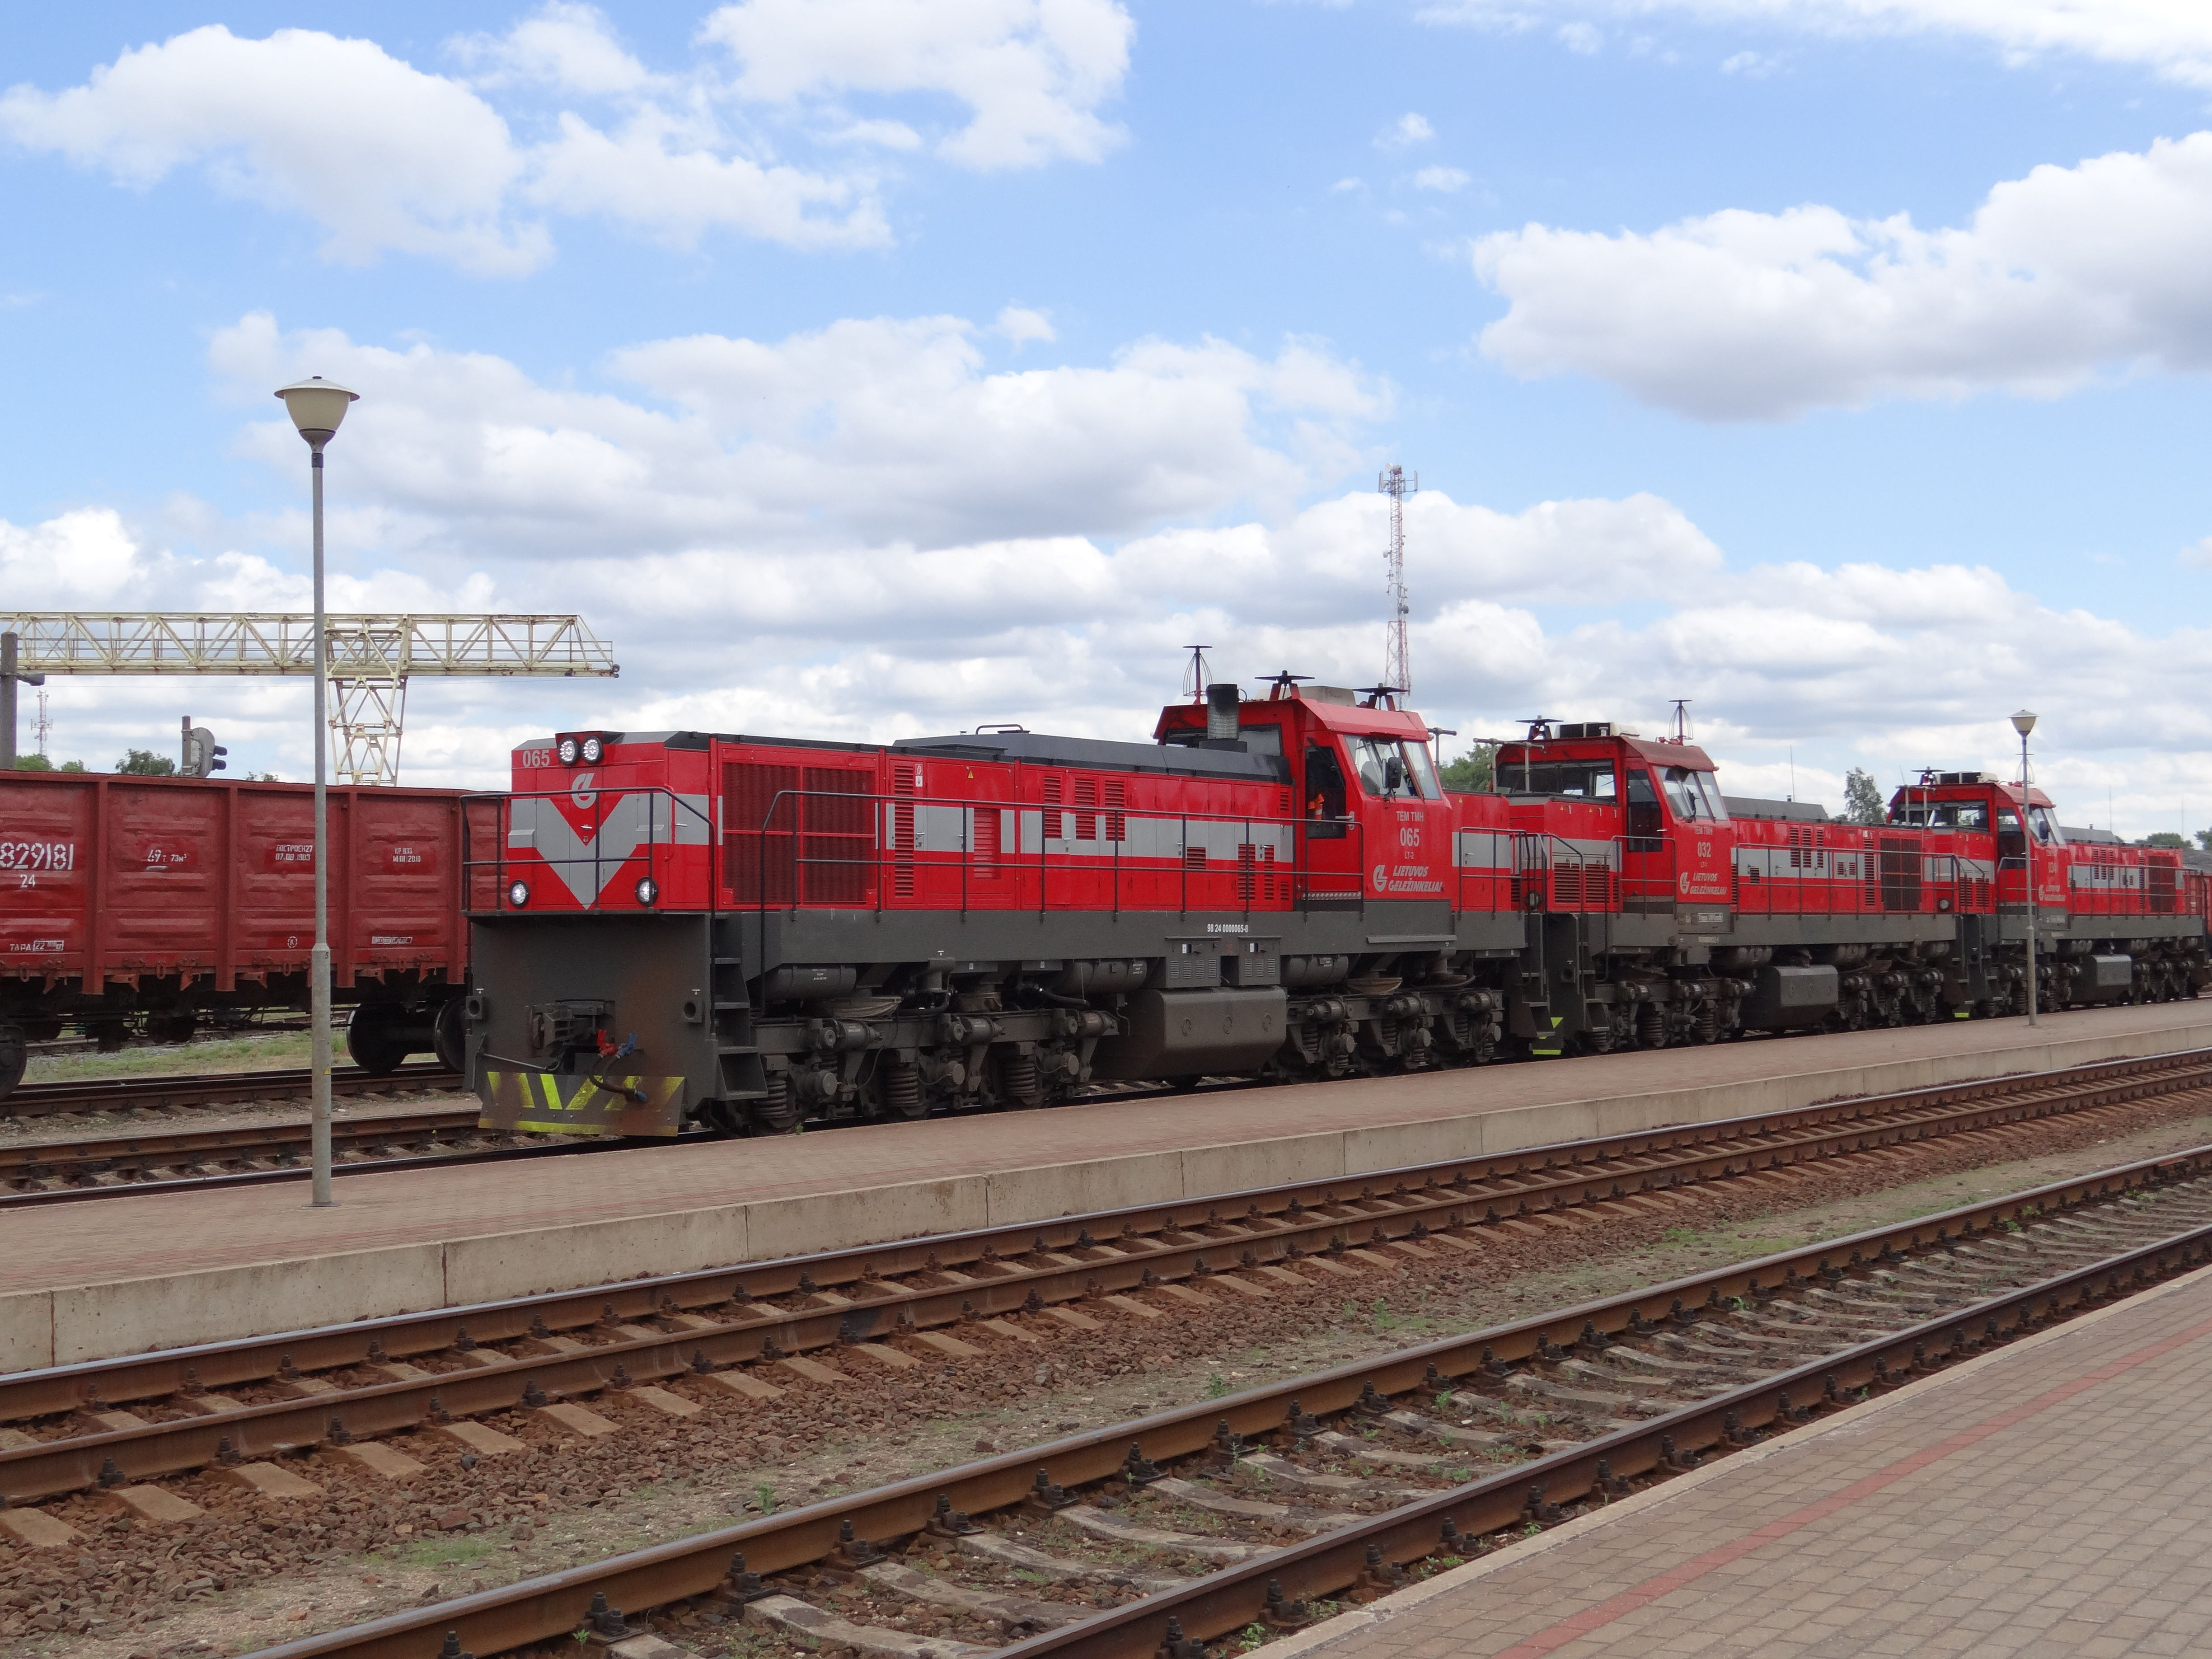 FUNET Railway Photography Archive: Lithuania - cargo locomotives and